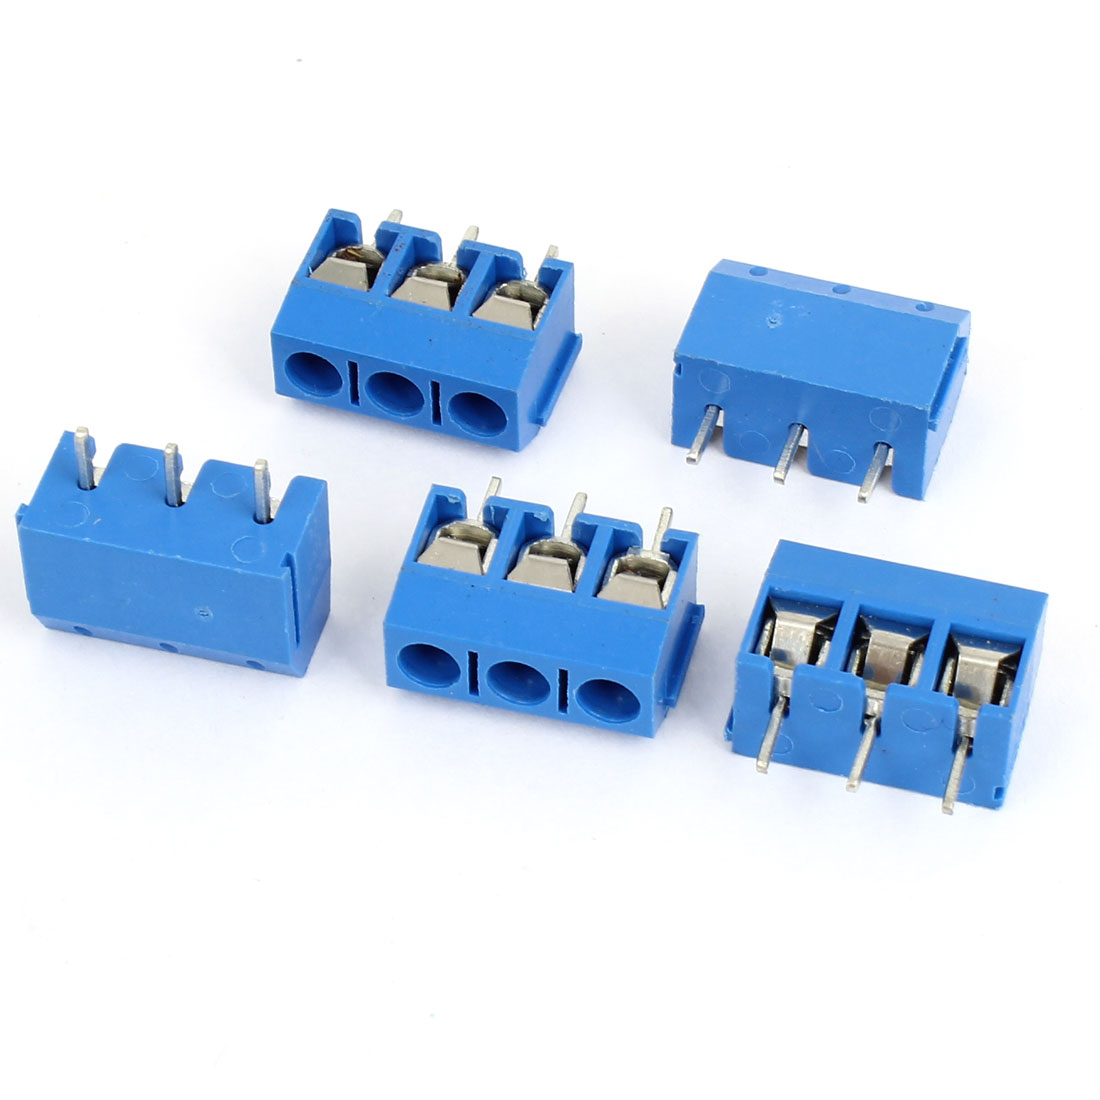 5 Pcs AC 300V 16A 5mm Pitch 3P Poles PCB Mounted Screw Terminal Block Connector Blue